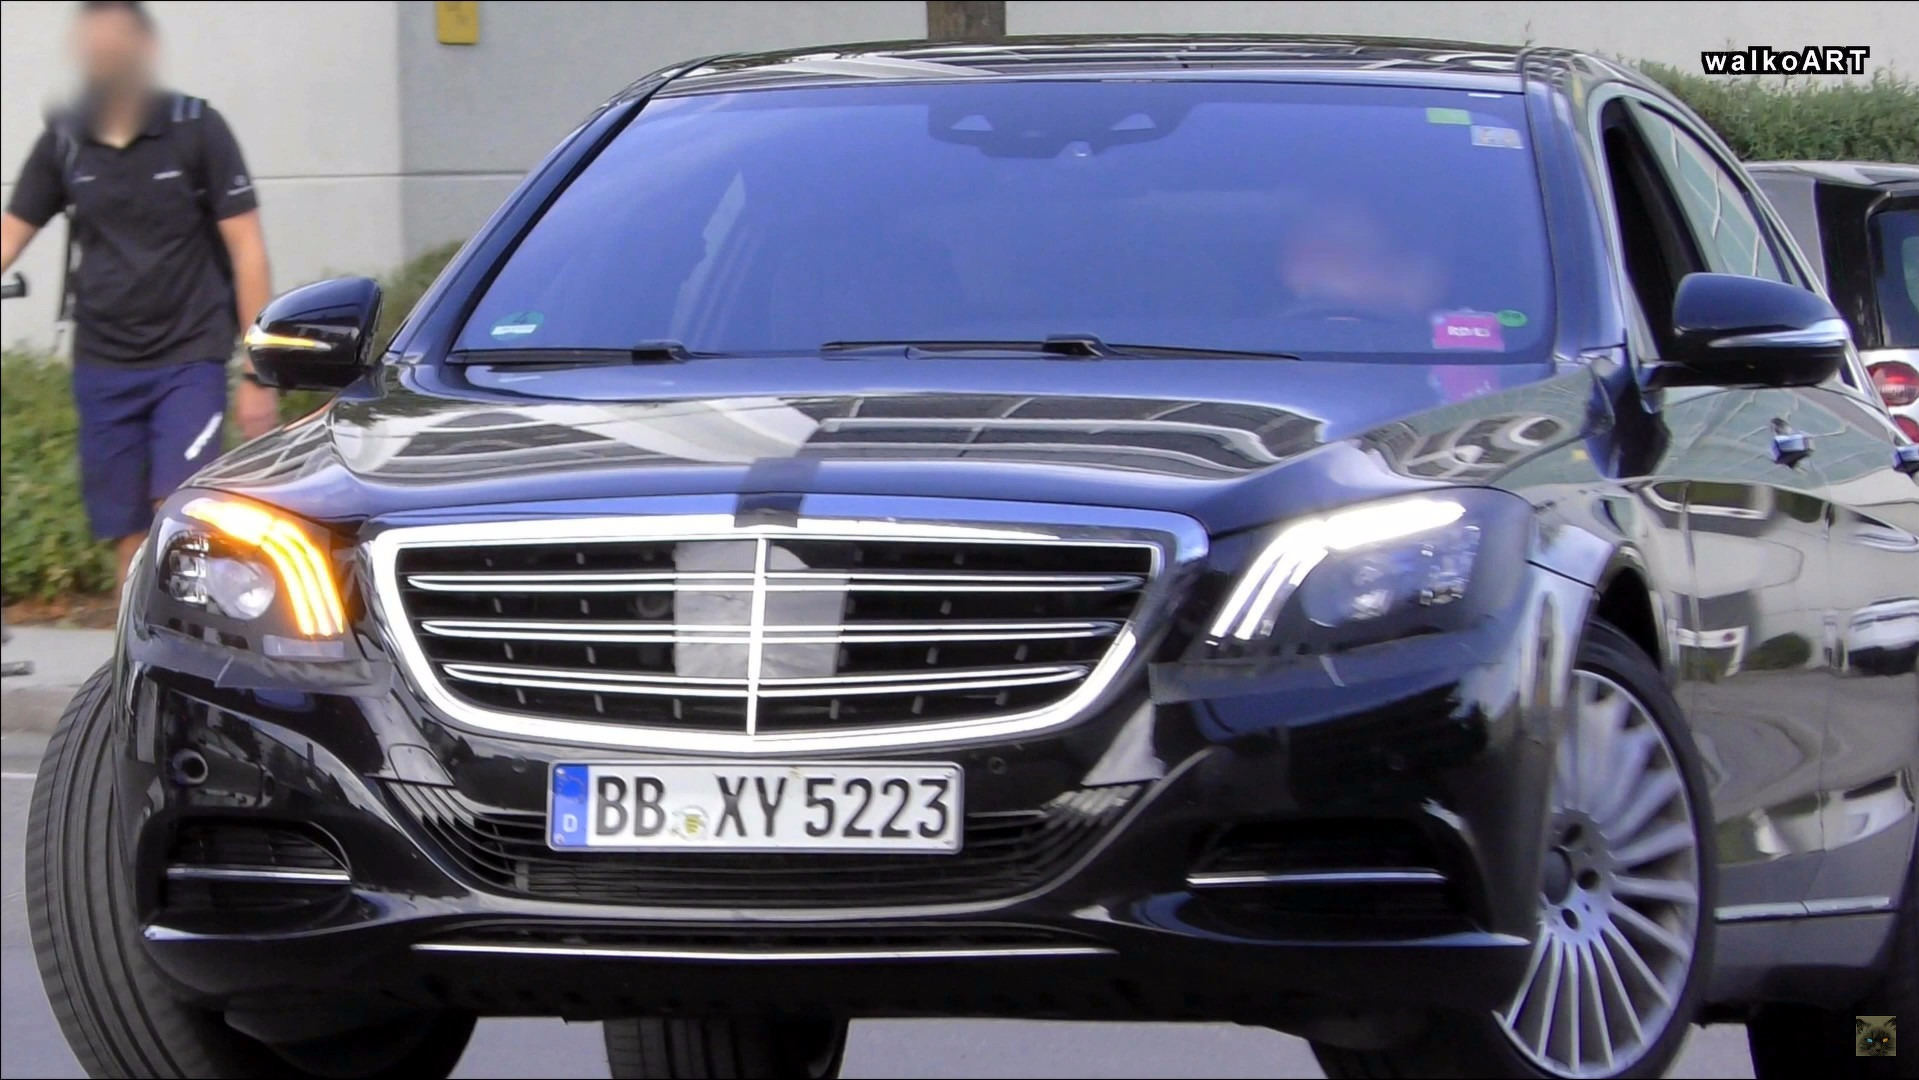 2018 mercedes s class spied with revised headlights and interior. Black Bedroom Furniture Sets. Home Design Ideas